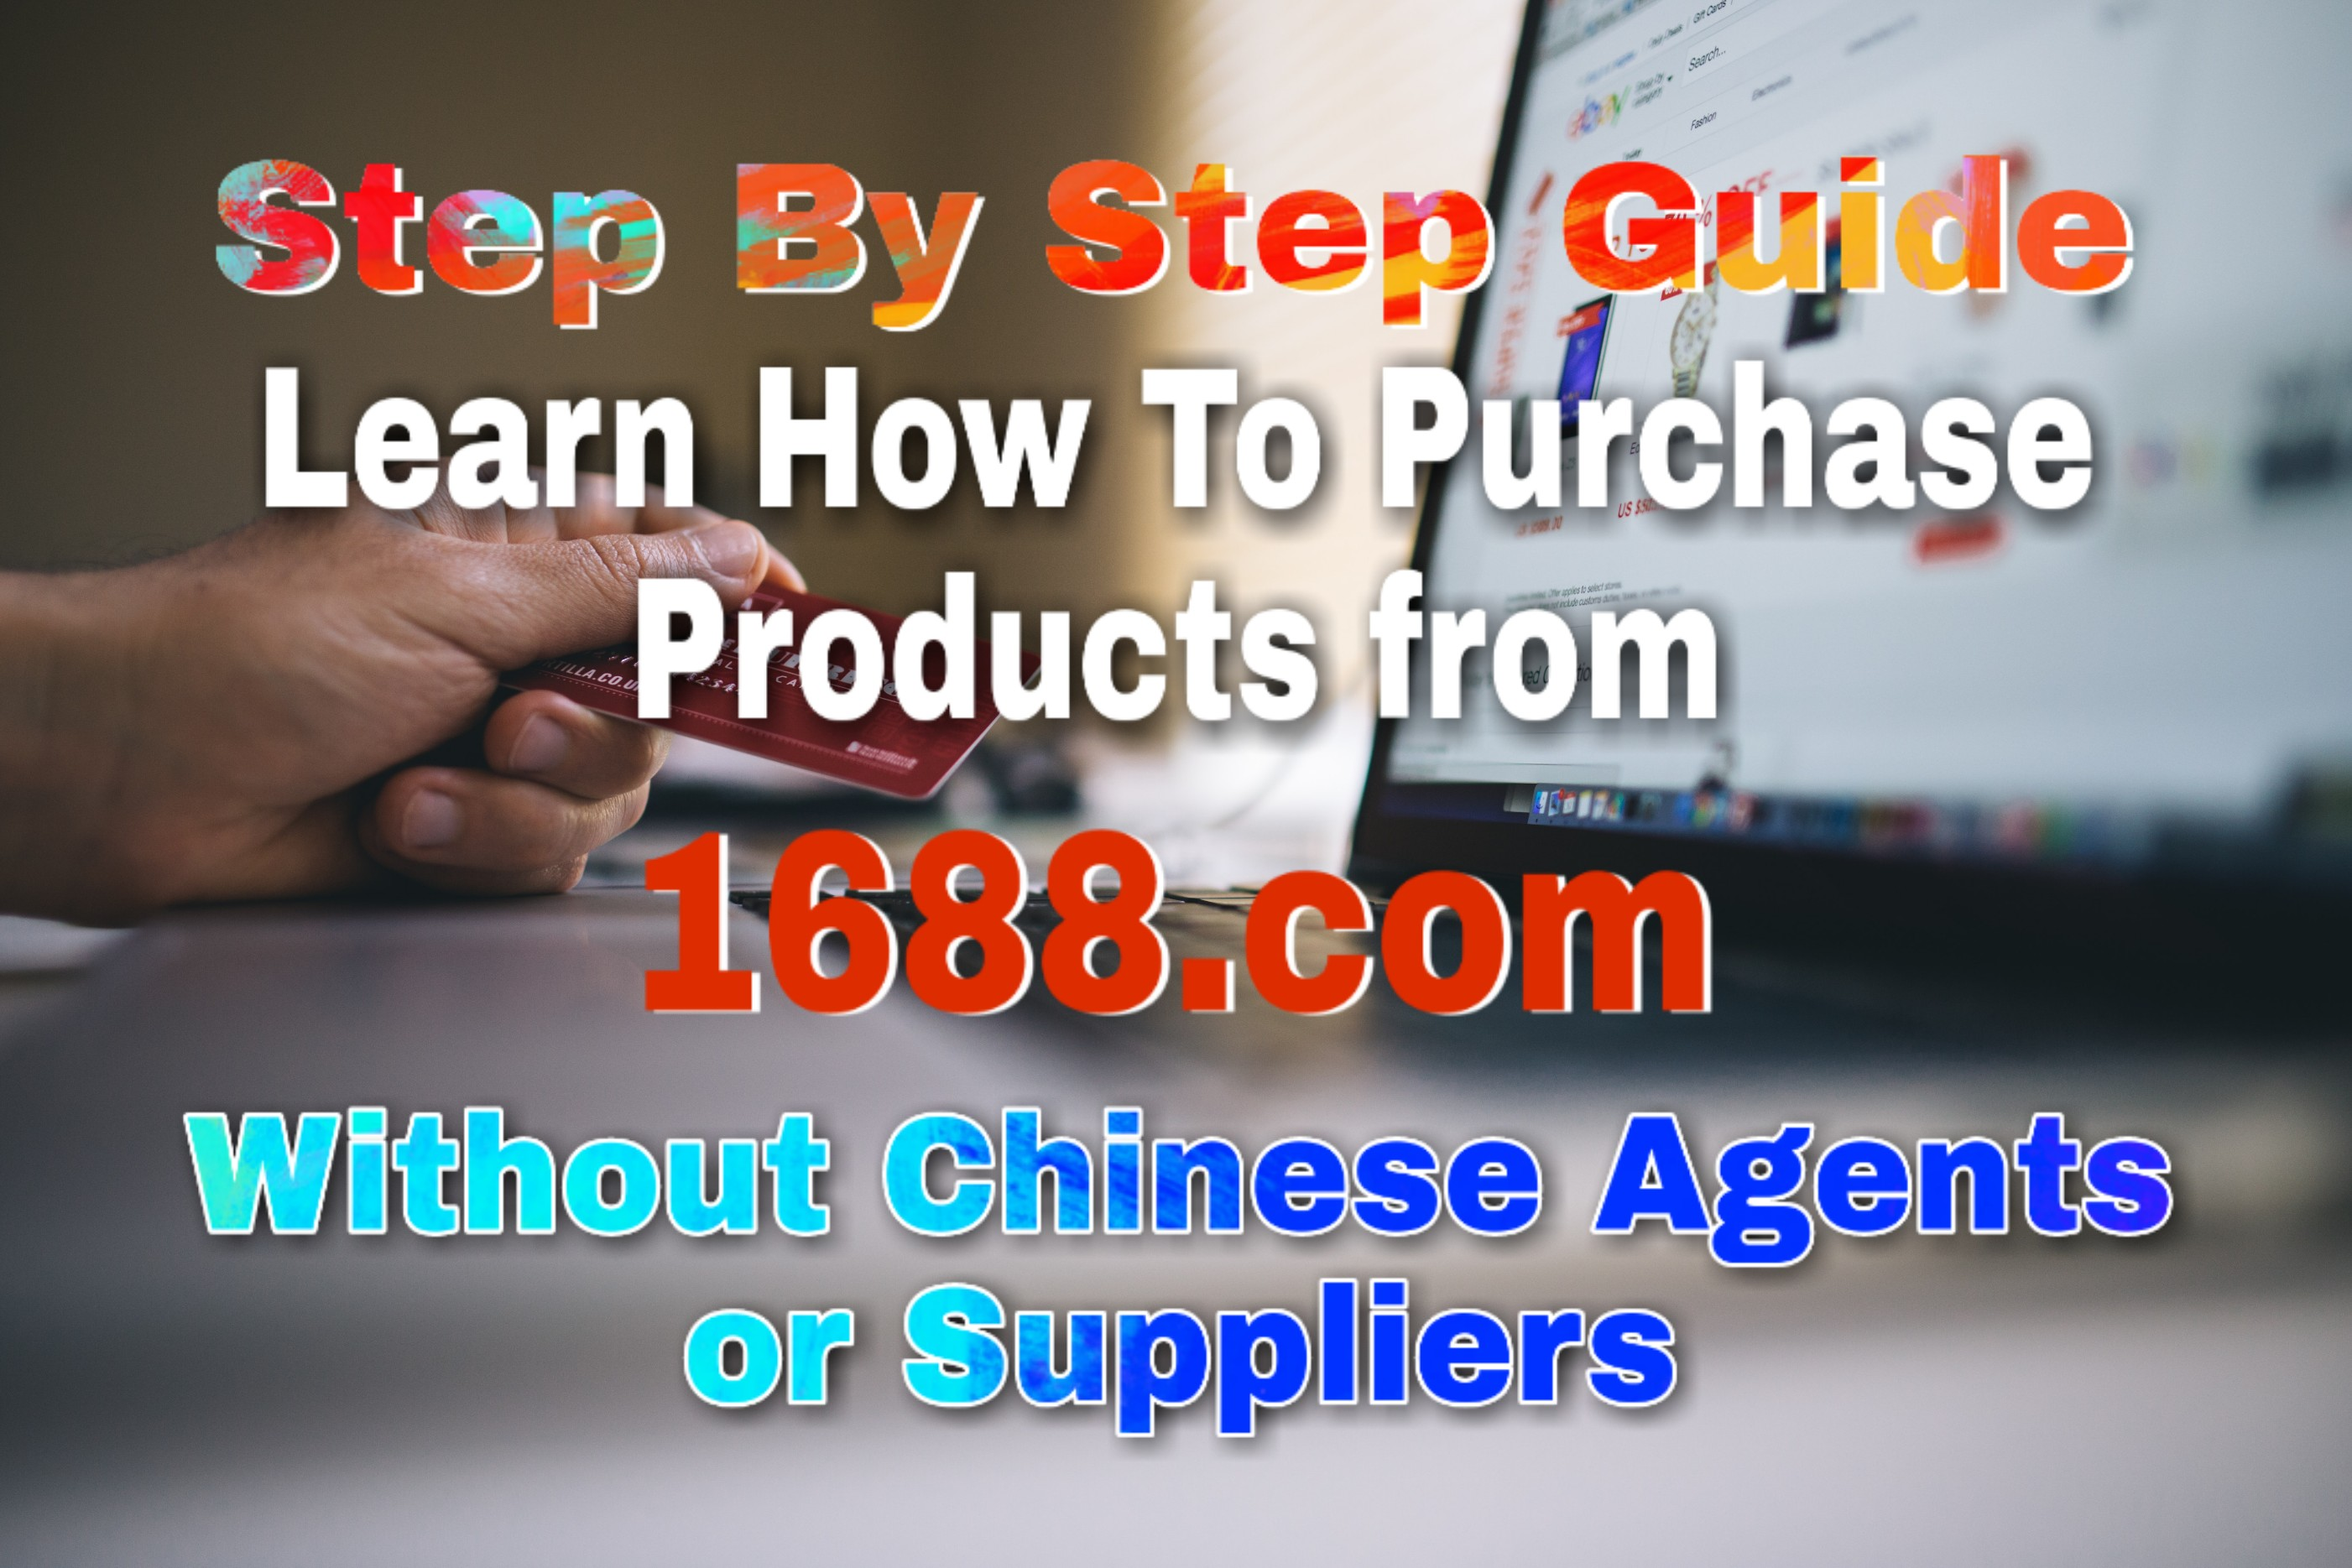 How To Purchase Products from 1688. com Without Chinese Agents/Suppliers - Step by Step PDF Guide